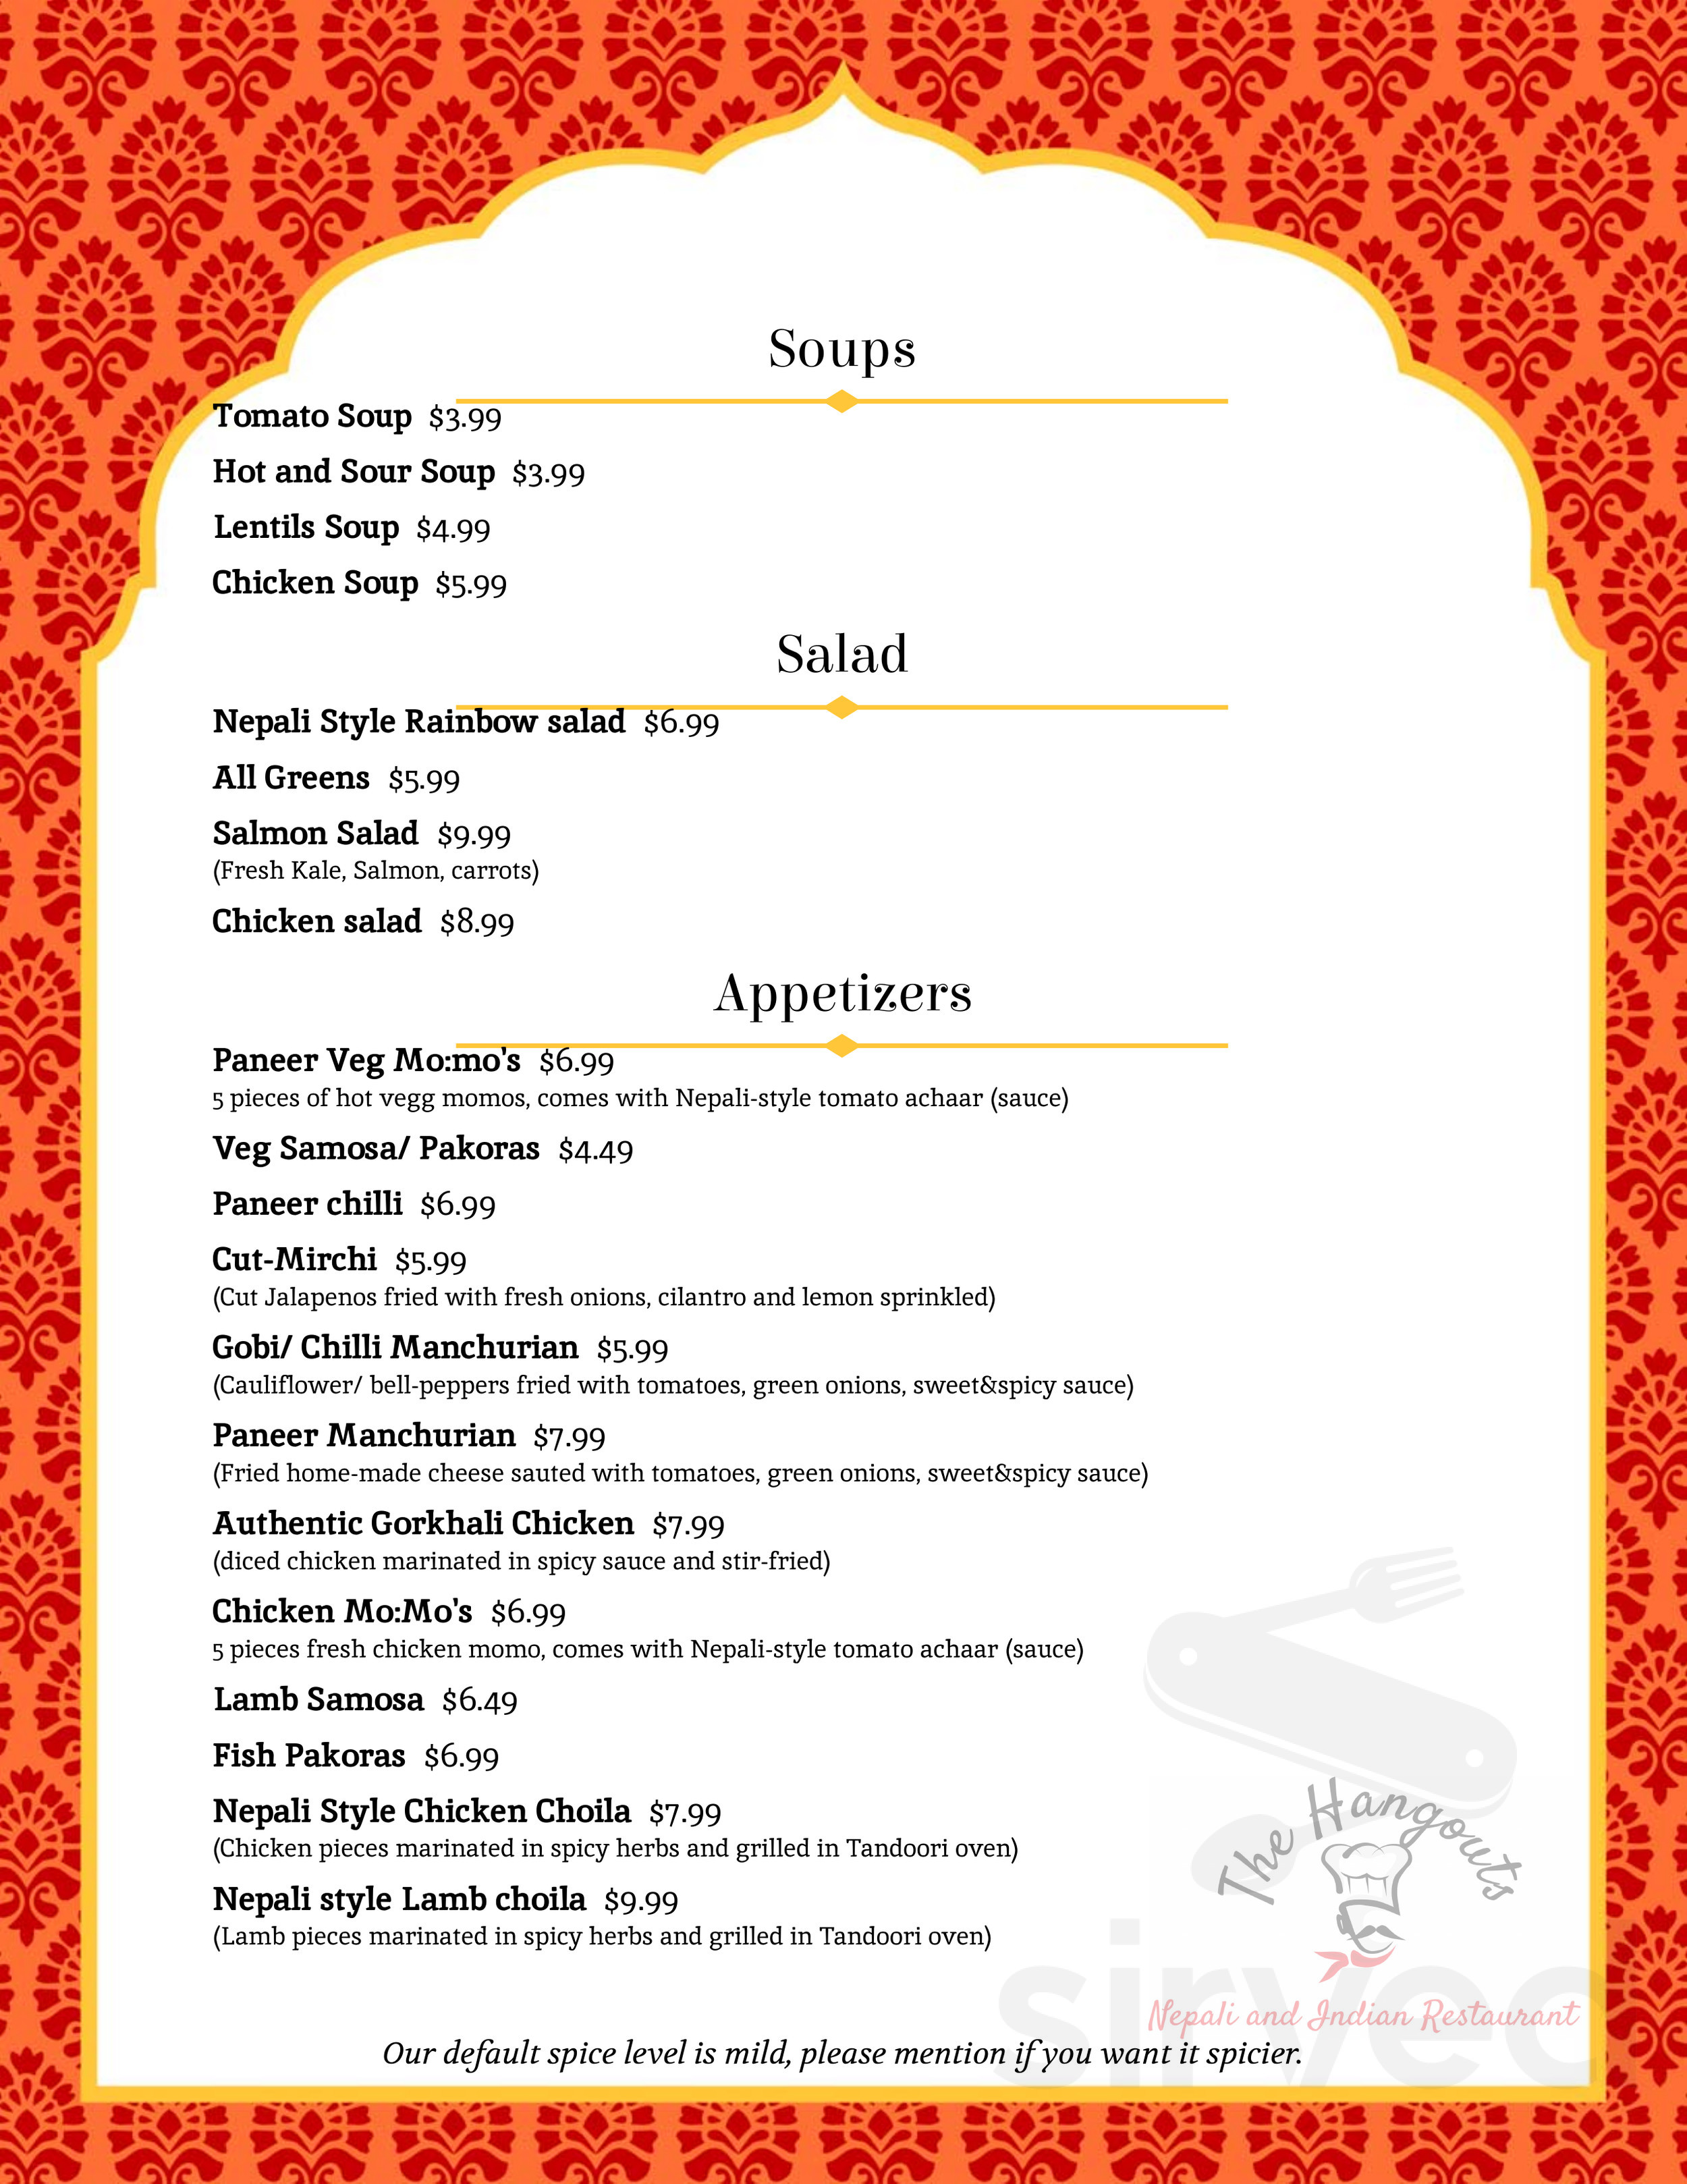 Menu For The Hangouts Nepali And Indian Restaurant In